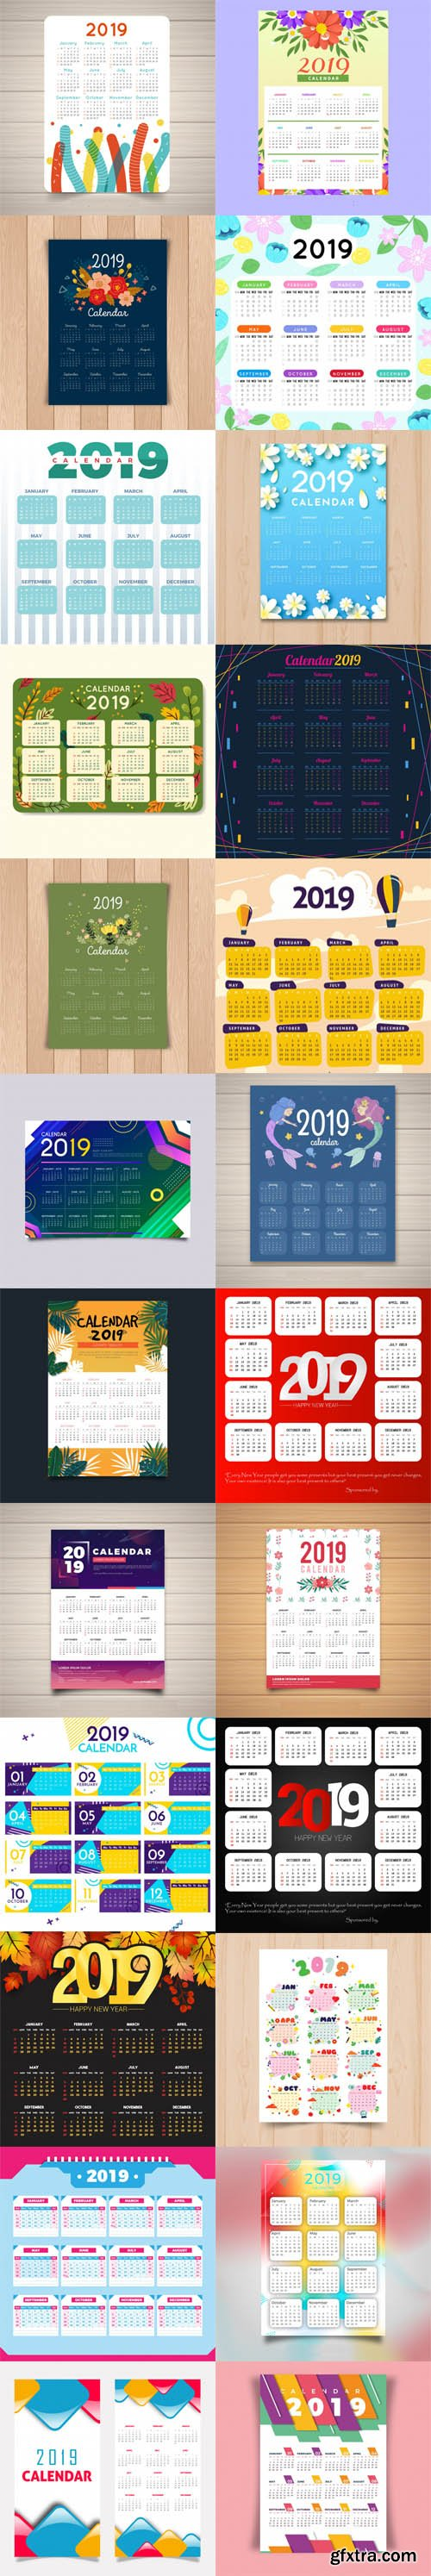 2019 Calendar Vector Templates Collection 3 [30 Calendar]